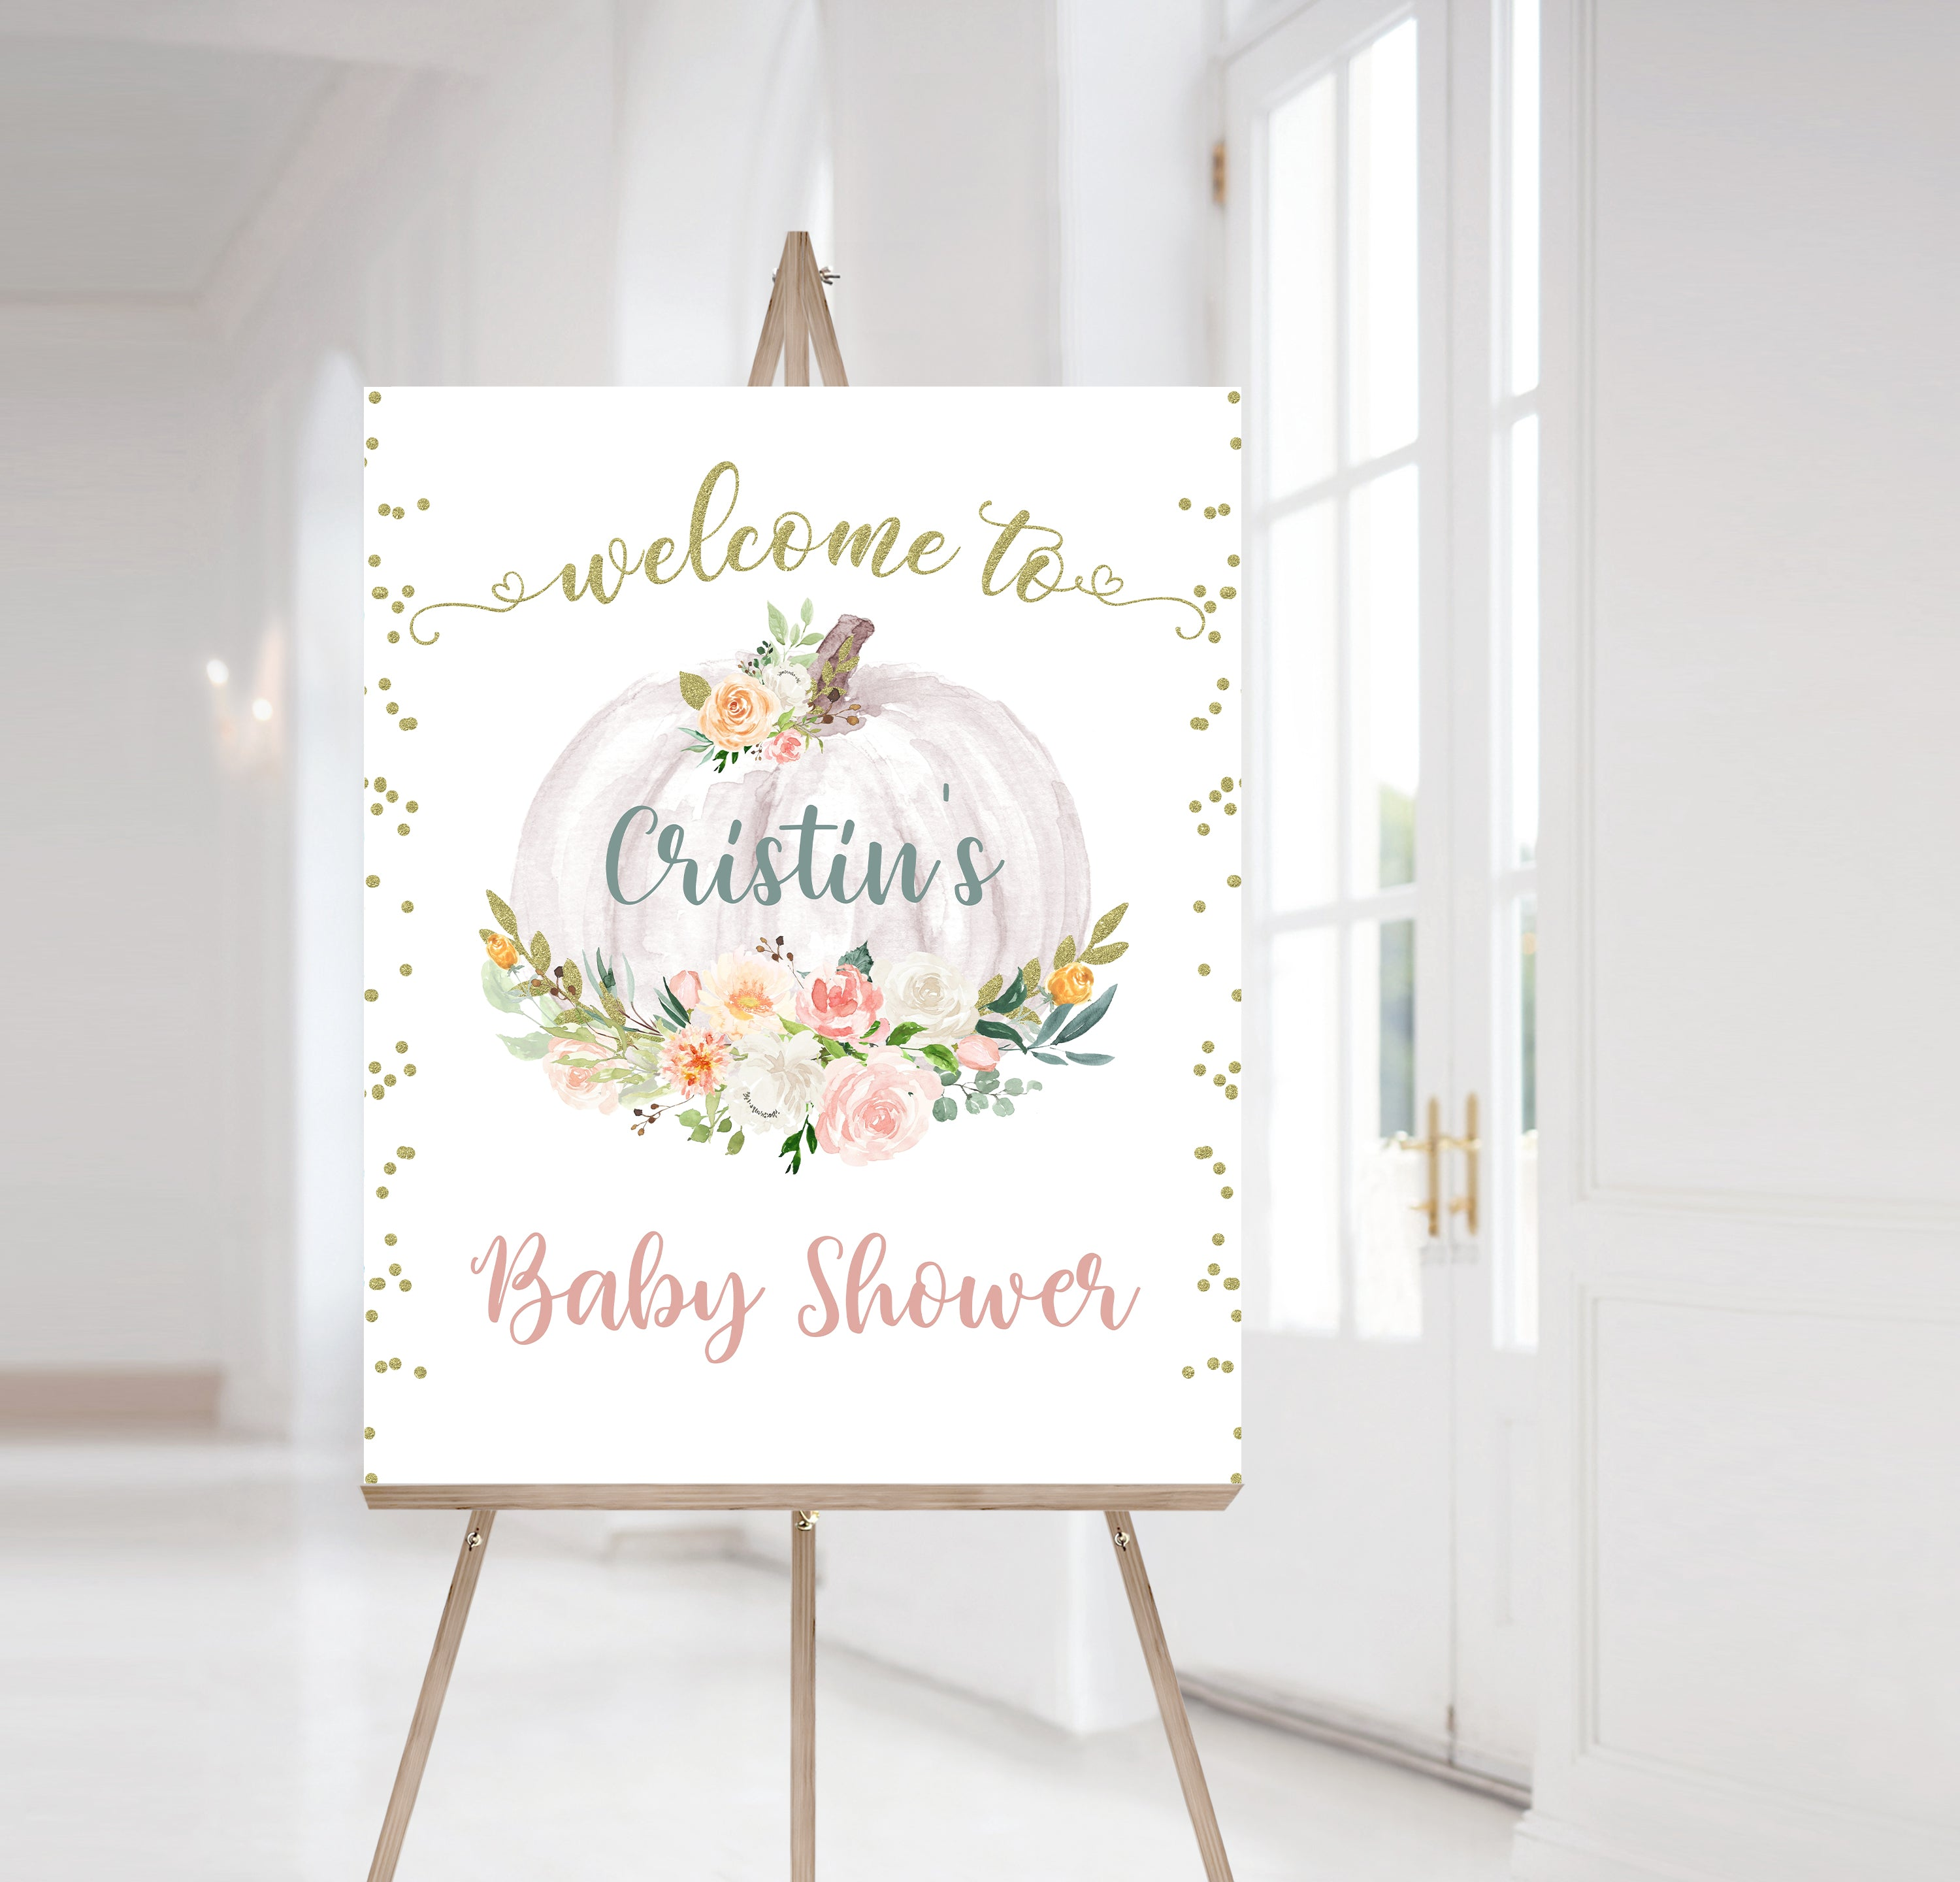 Editable Pumpkin Welcome Sign Baby Shower | Fall Theme Shower Decorations - 30H